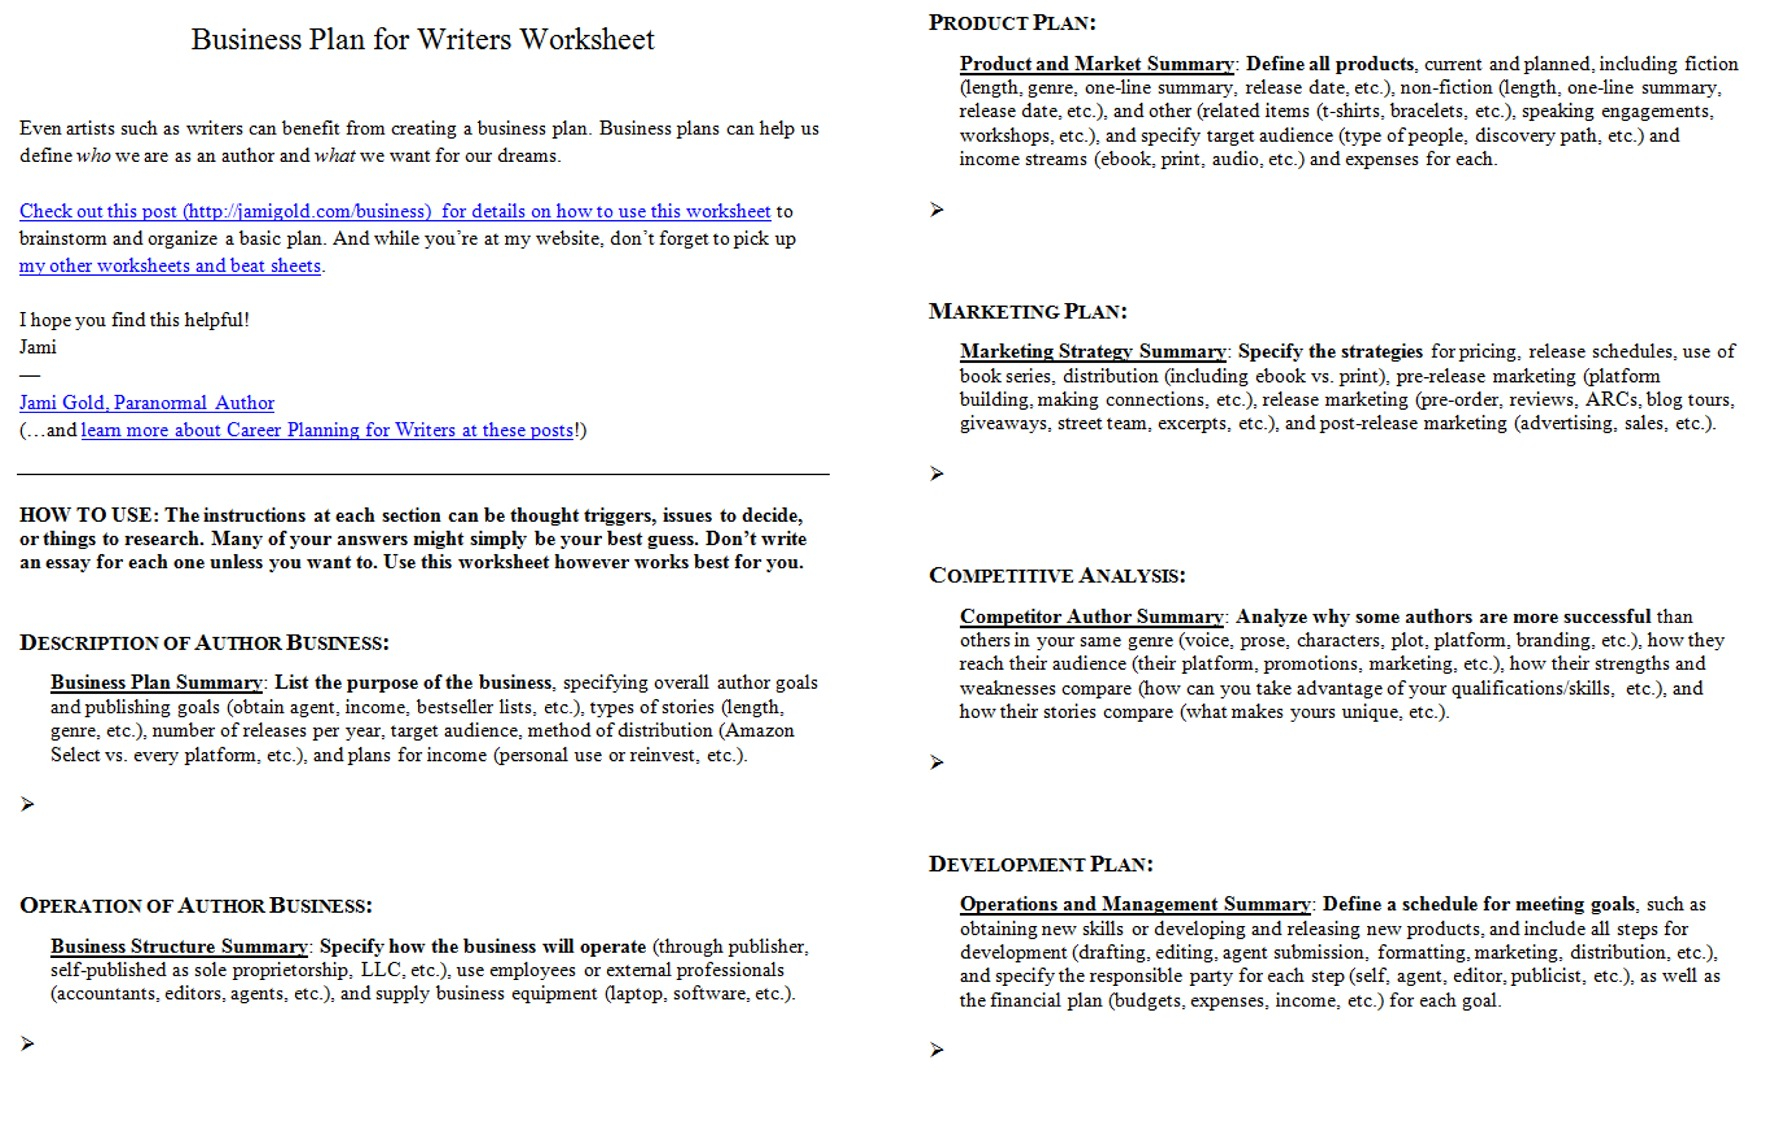 Weirdmailus  Scenic Worksheets For Writers  Jami Gold Paranormal Author With Marvelous Screen Shot Of Both Pages Of The Business Plan For Writers Worksheet With Enchanting Long Division With Remainders Worksheets Also Function Notation Worksheet With Answers In Addition Schedule A Worksheet And Volume Of Composite Figures Worksheet As Well As Joe And Charlie Th Step Worksheets Additionally Balancing Chemical Equations Worksheet  From Jamigoldcom With Weirdmailus  Marvelous Worksheets For Writers  Jami Gold Paranormal Author With Enchanting Screen Shot Of Both Pages Of The Business Plan For Writers Worksheet And Scenic Long Division With Remainders Worksheets Also Function Notation Worksheet With Answers In Addition Schedule A Worksheet From Jamigoldcom